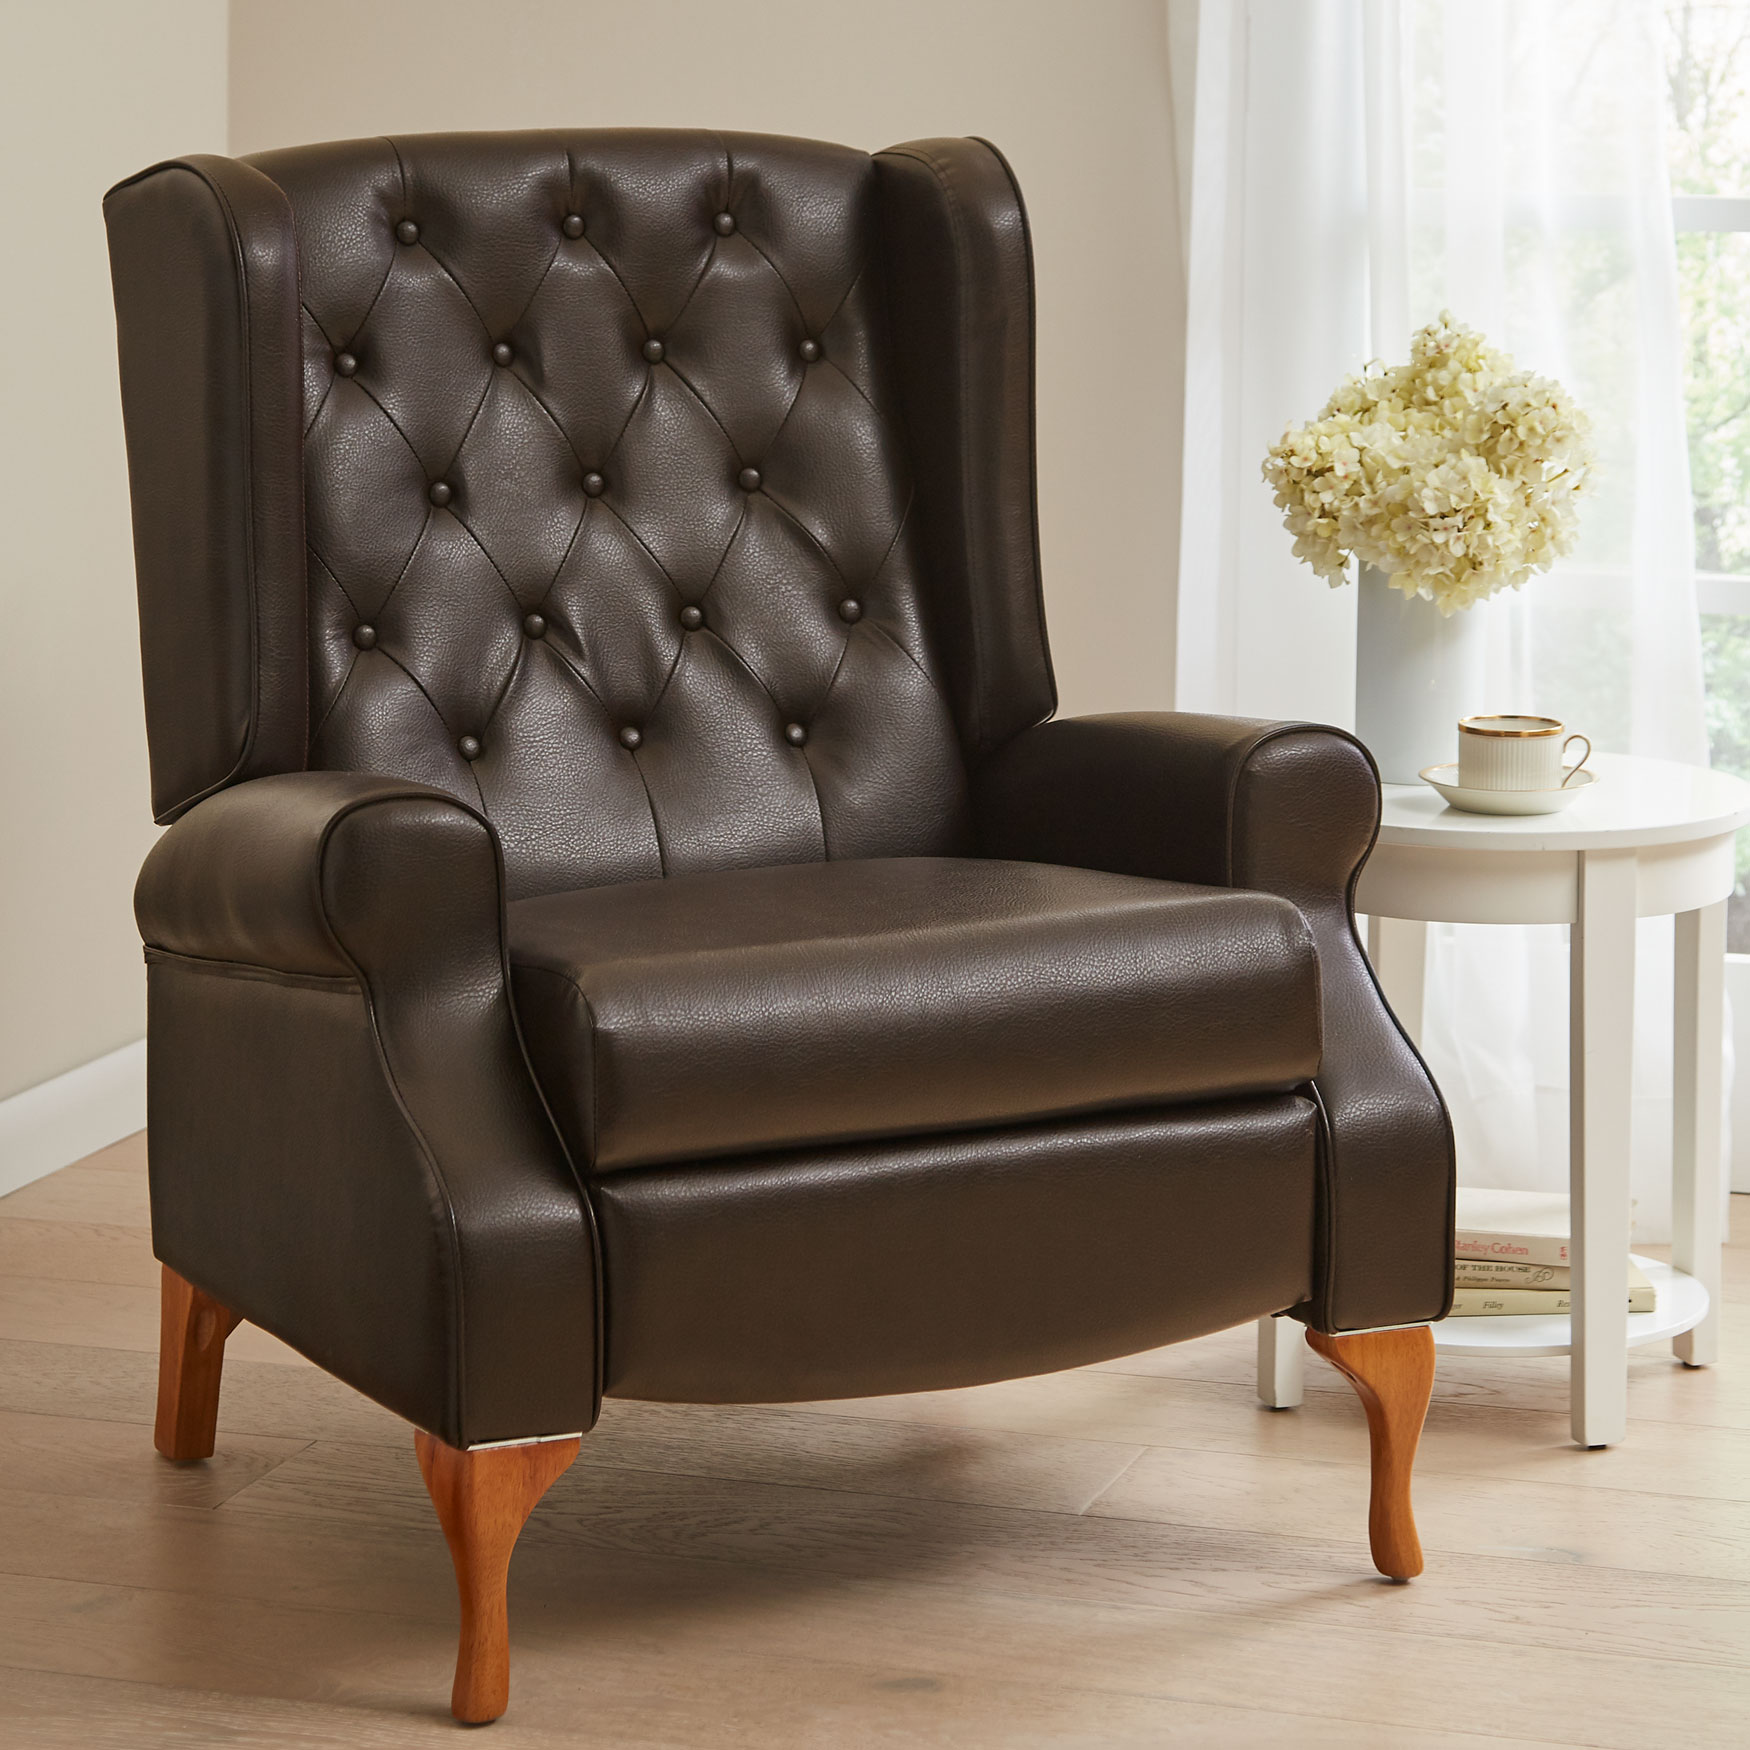 Queen Anne Style Tufted Wingback Recliner,